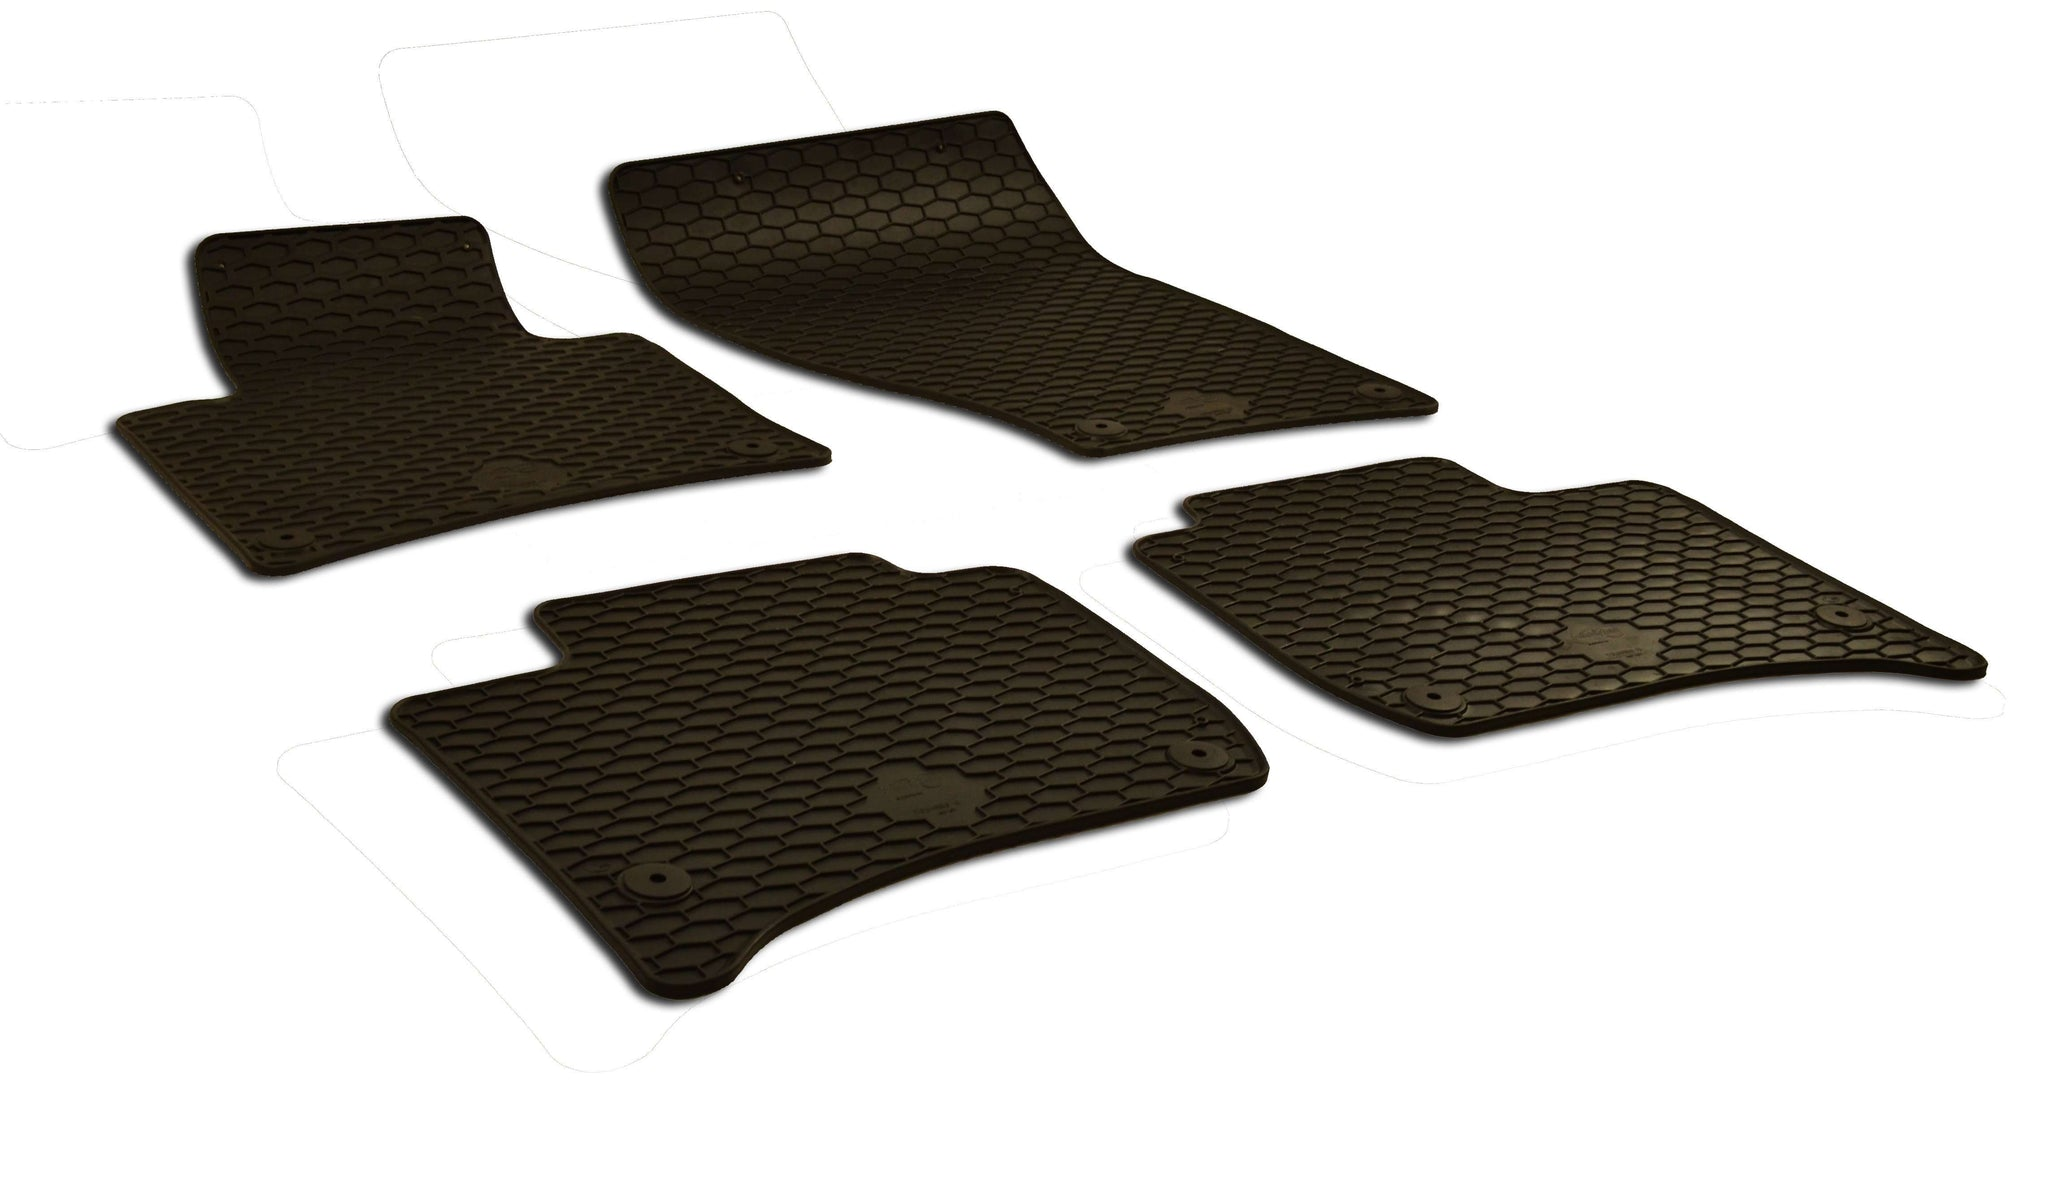 Volkswagen Touareg 2011 Set of 4 Black Rubber OE Fit All Weather Floor Mats